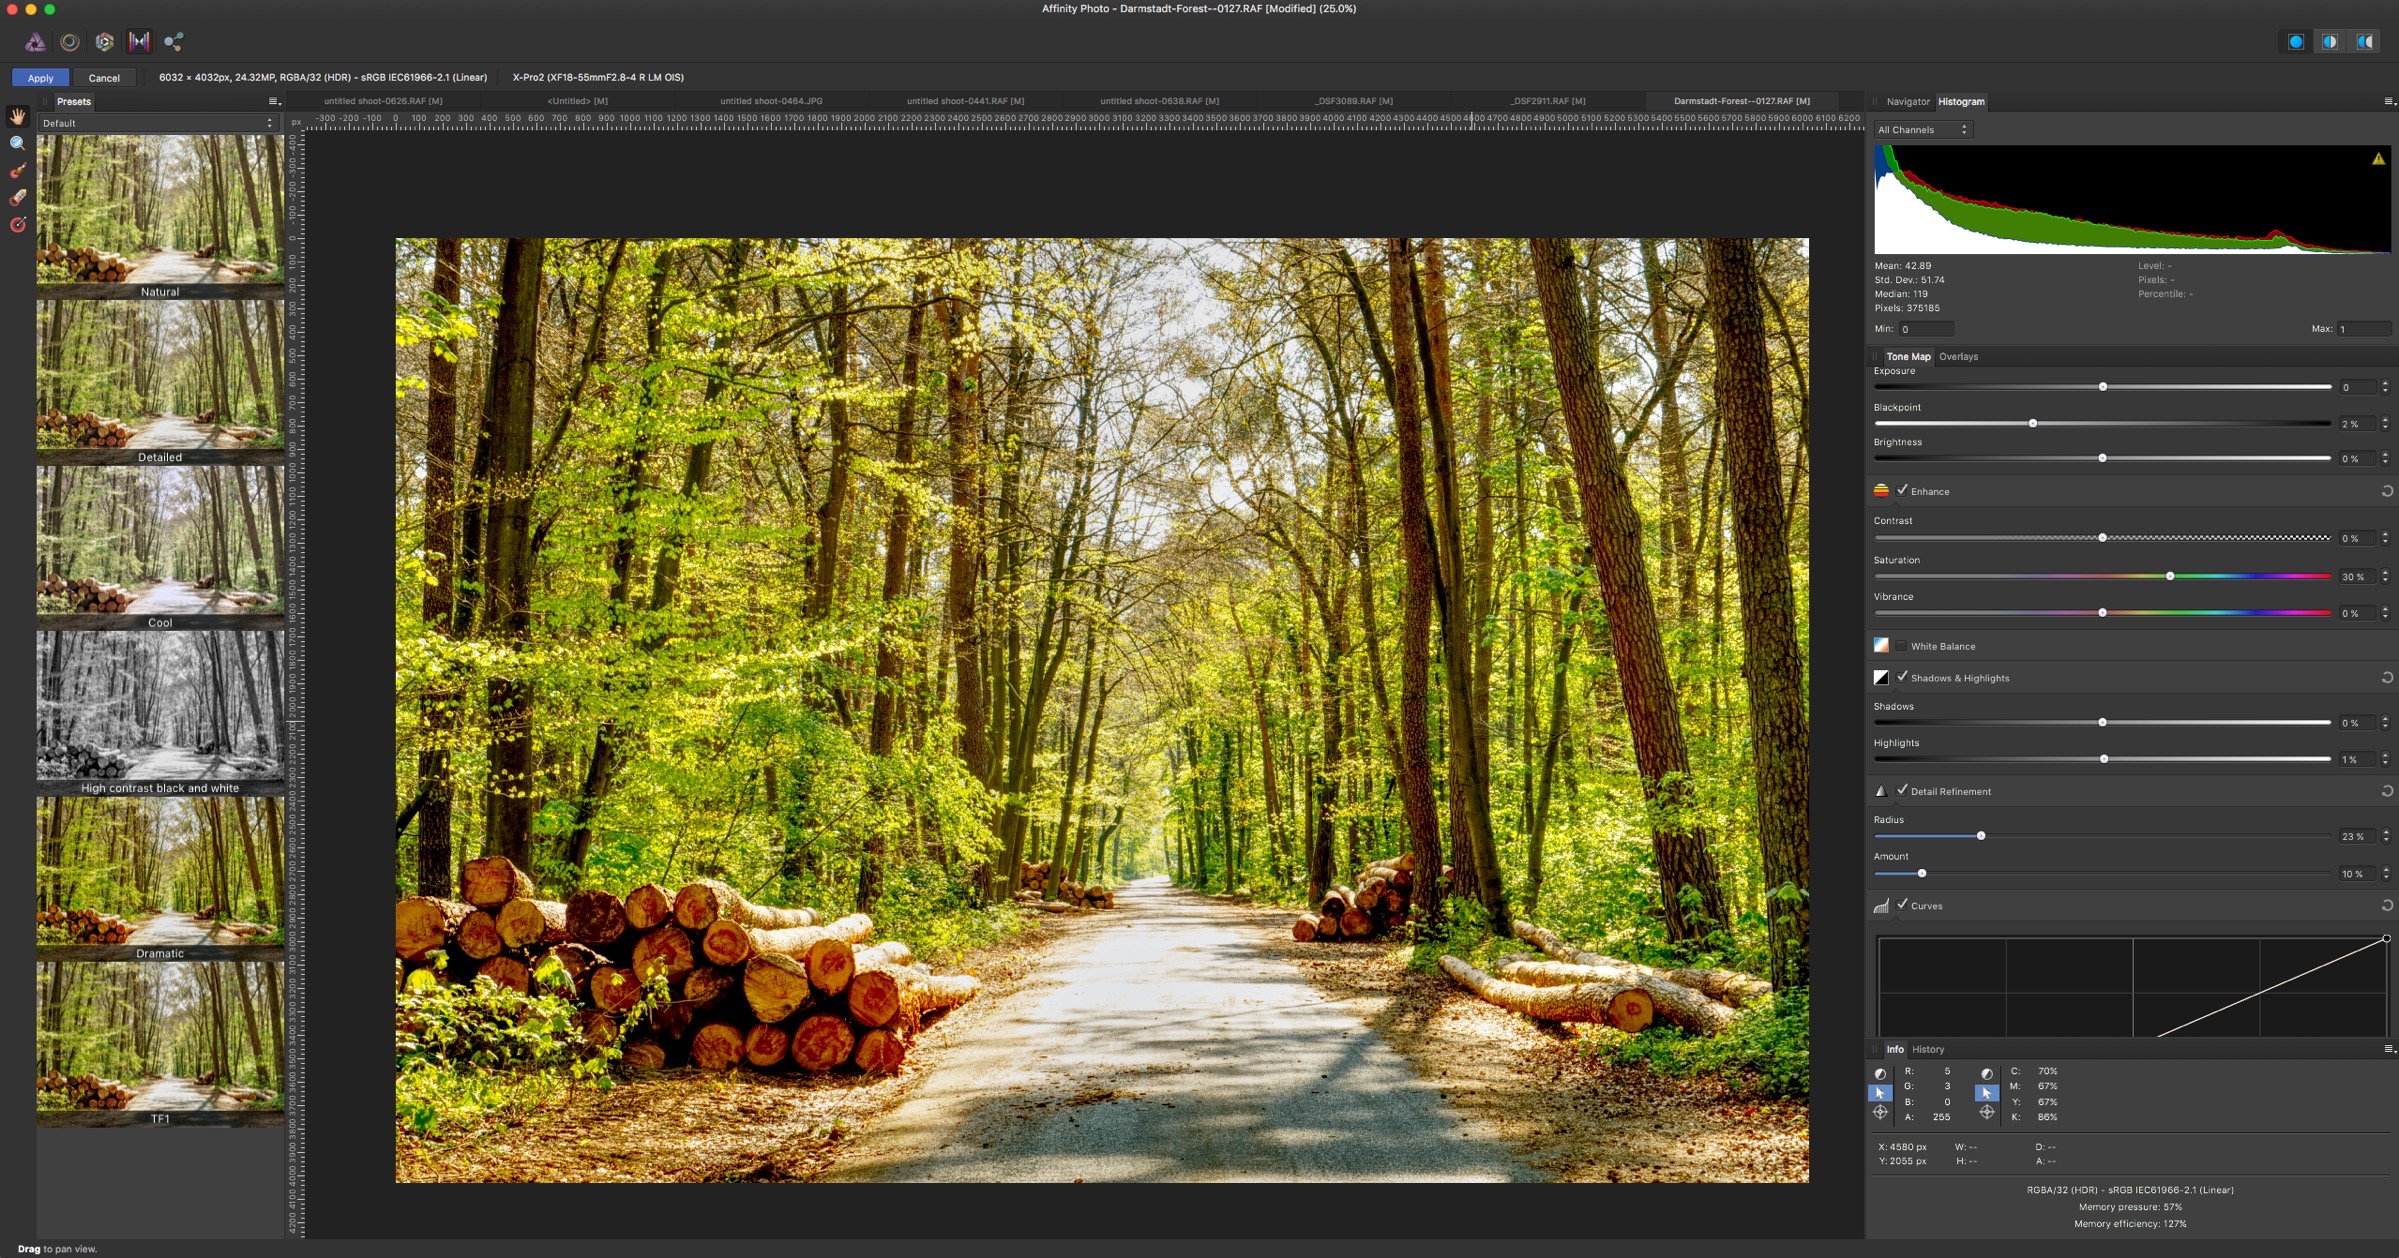 Affinity Photo 1.5 Tone Mapping Persona